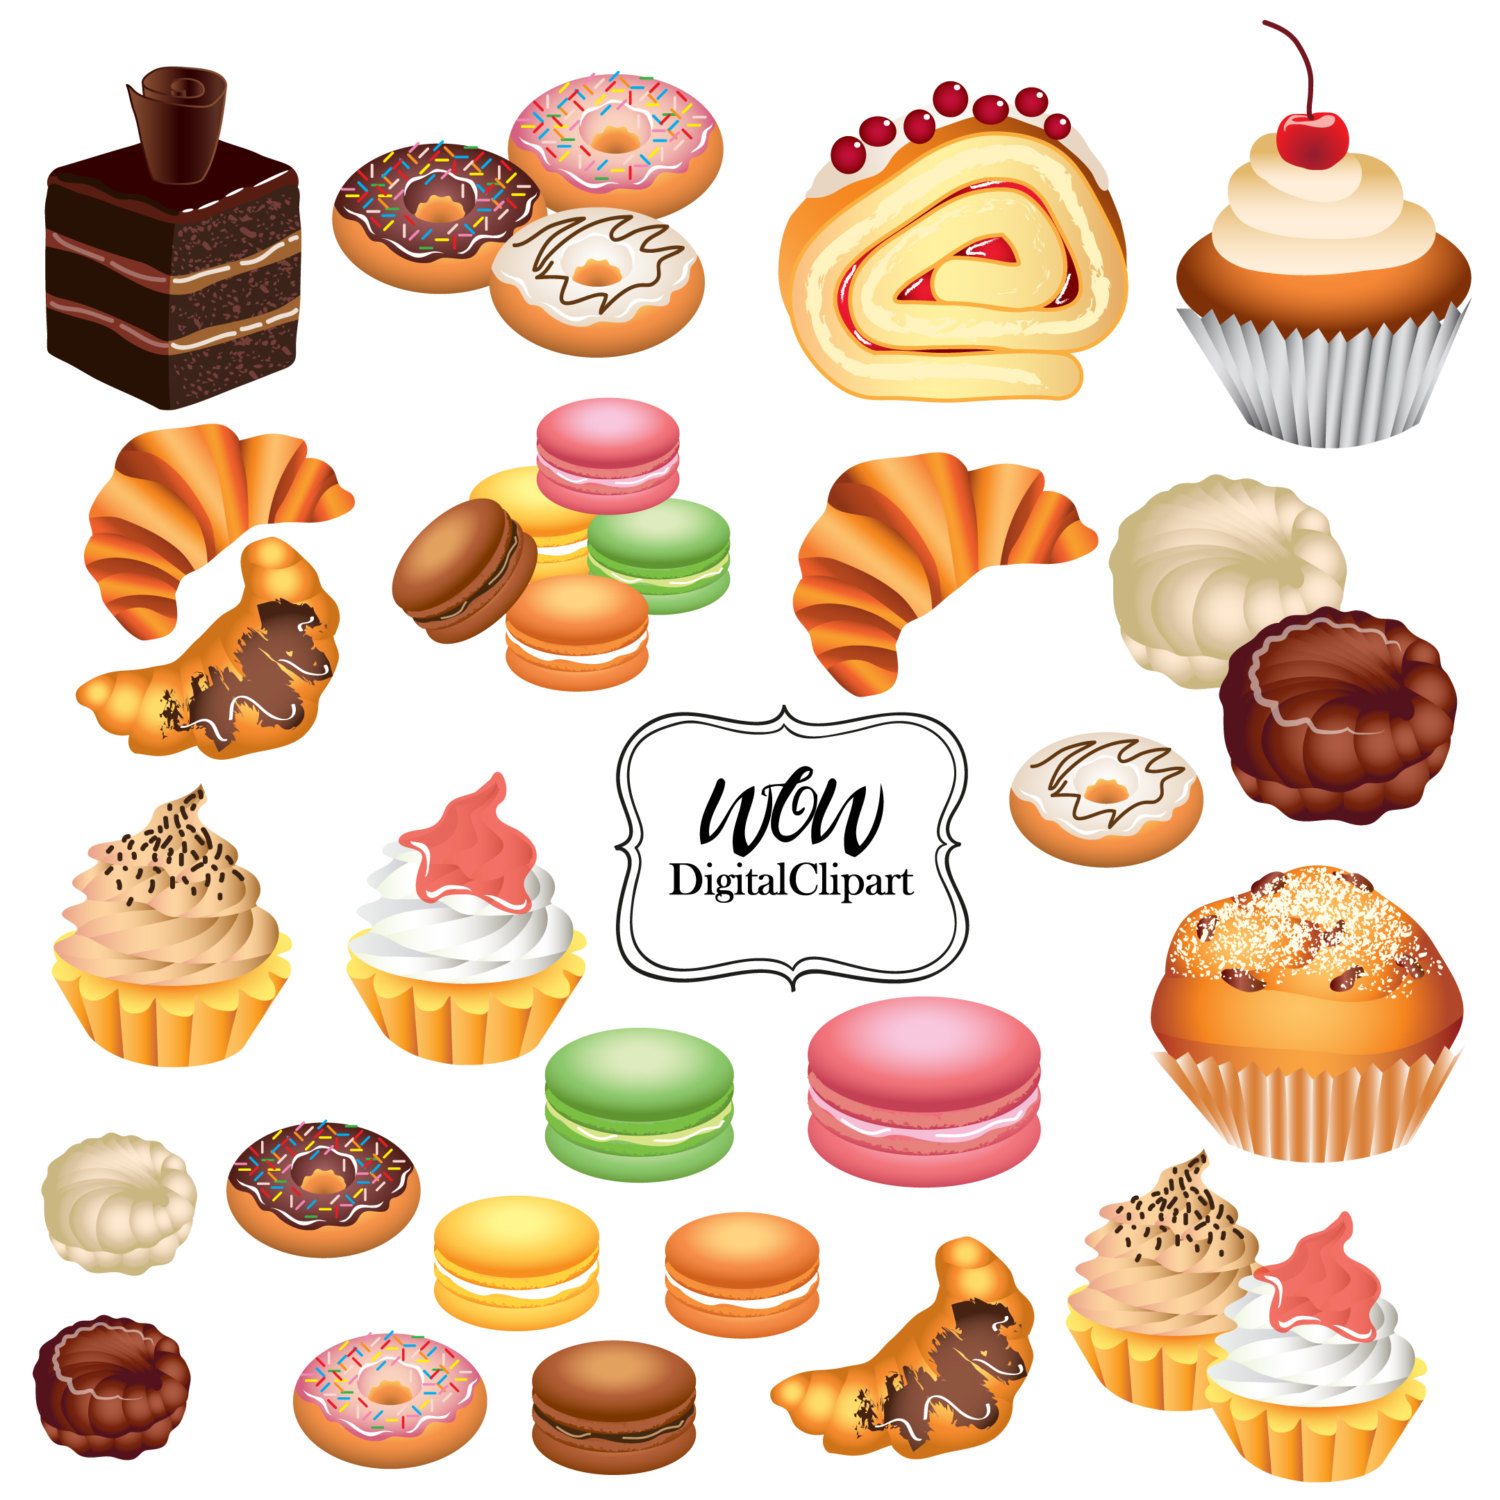 Baked goods clipart baked food, Baked goods baked food.